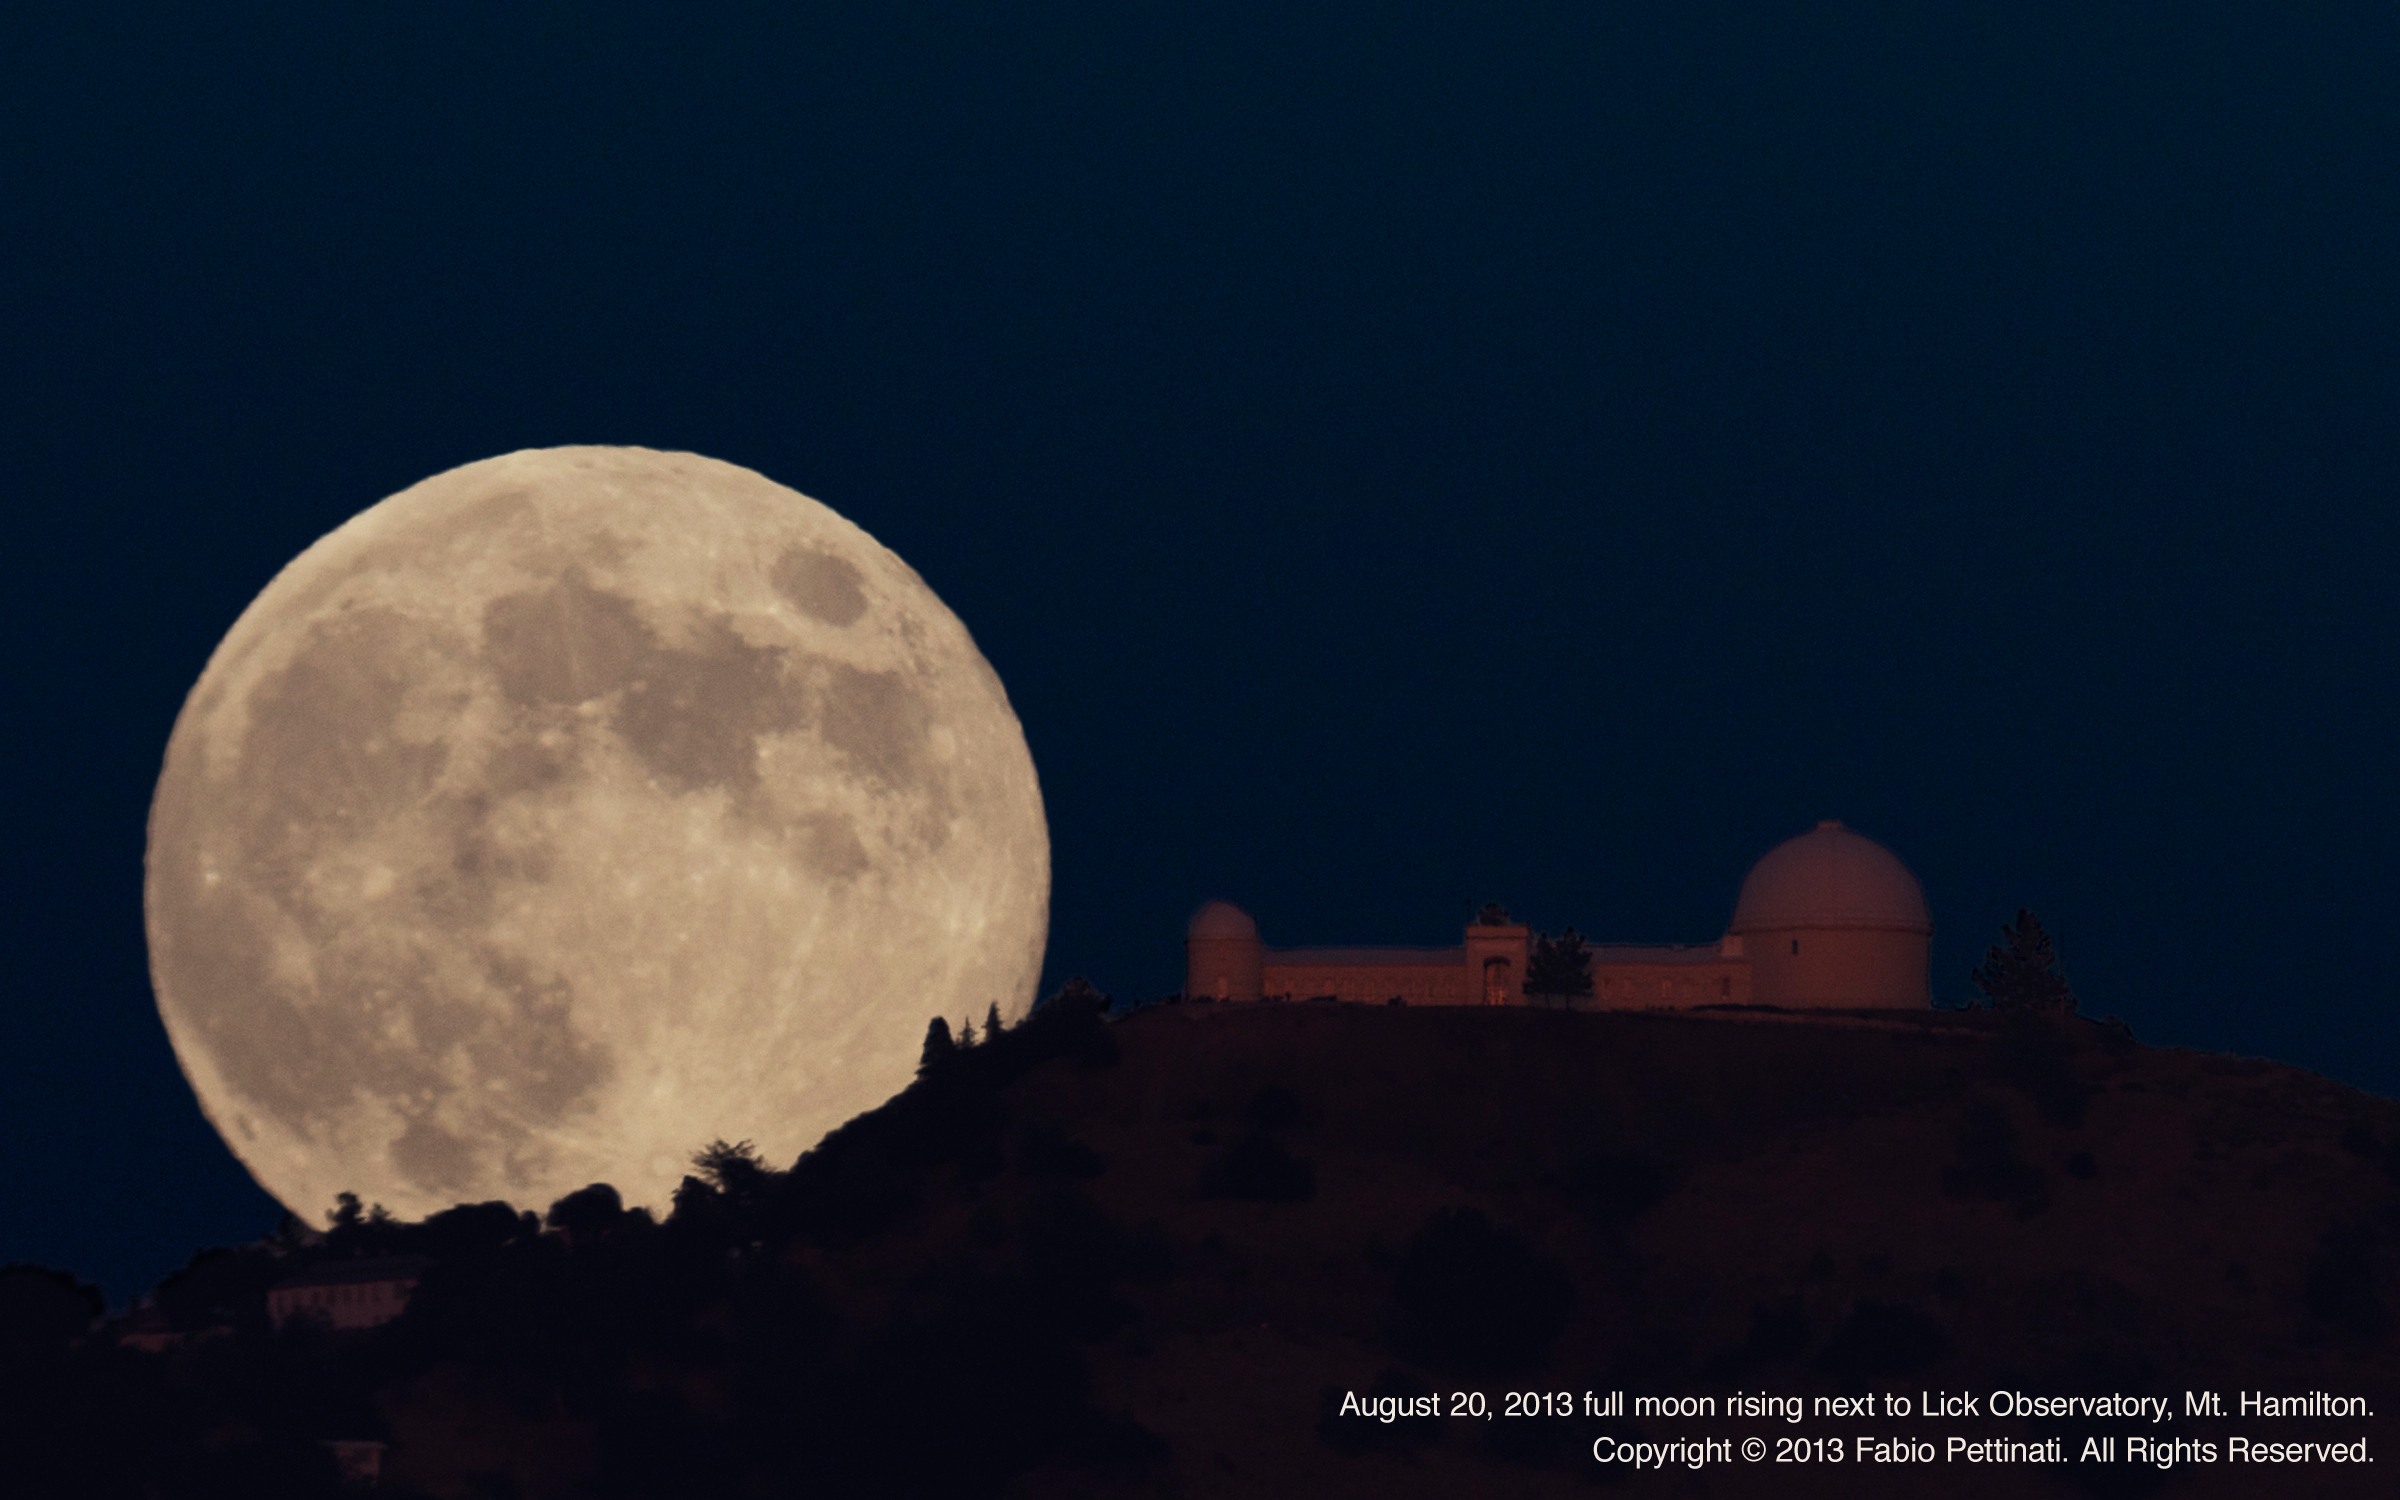 Moon Rises Next to Lick Observatory, Mt. Hamilton